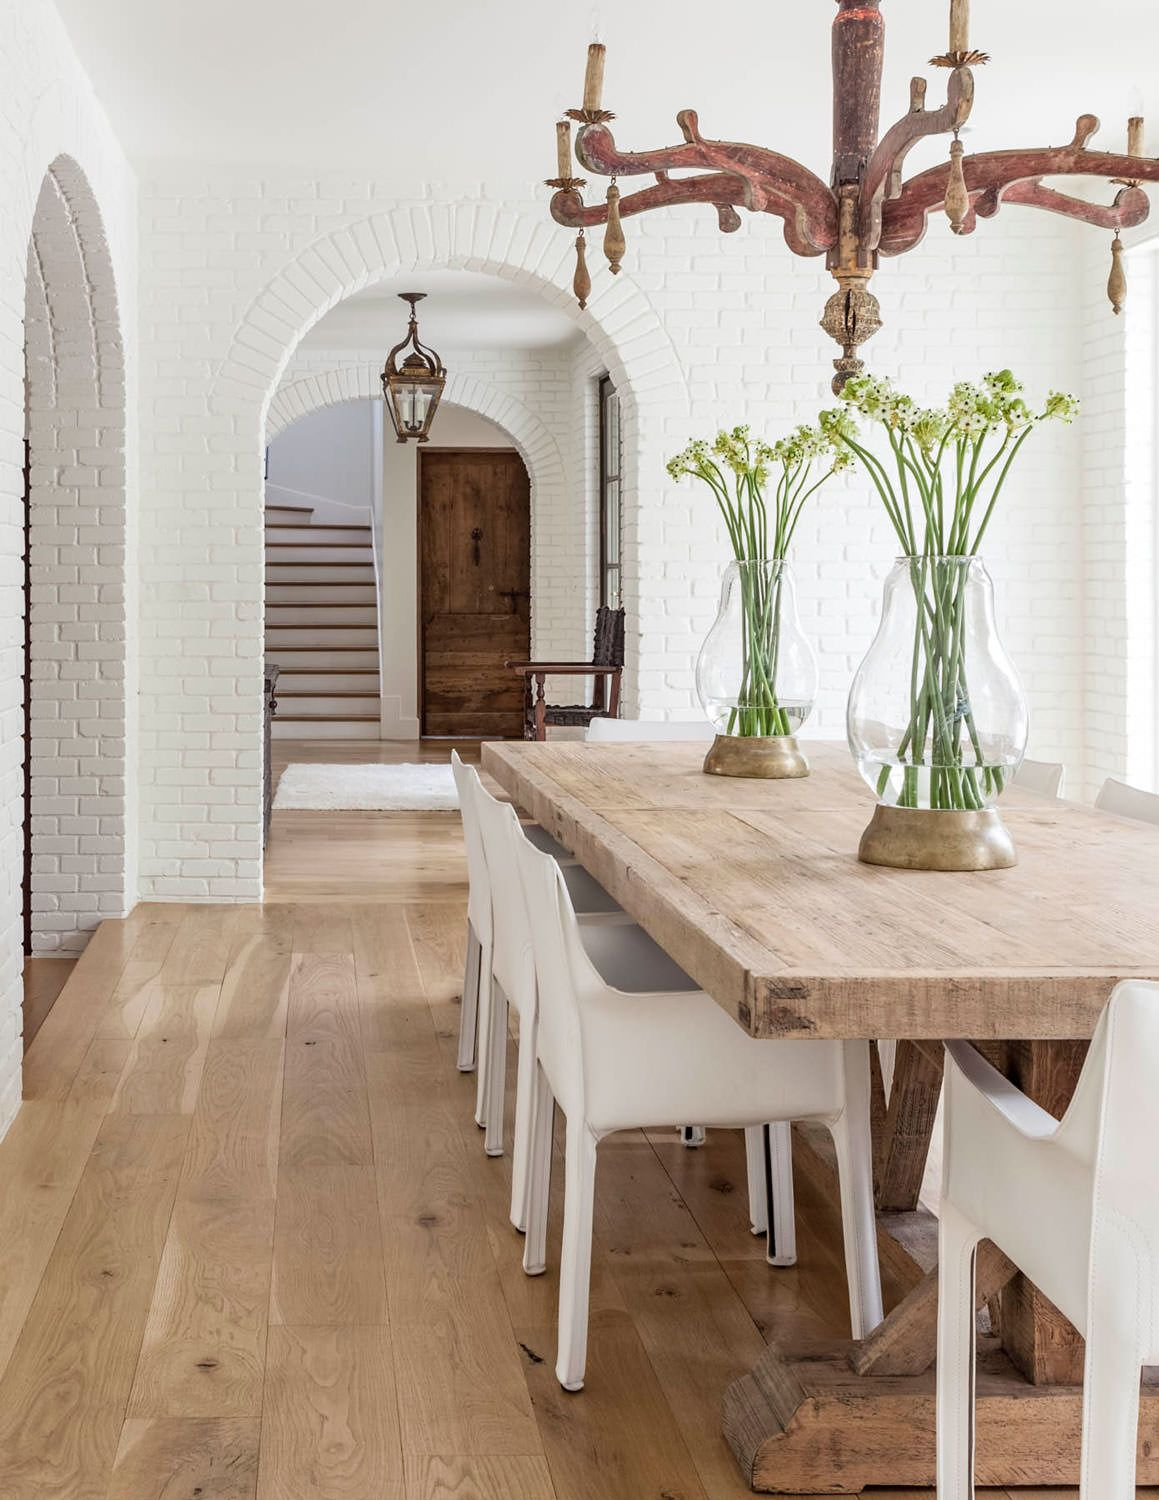 Painted white brick walls interior arches archways wide plank wood floors modern chairs paired with  farmhouse dining table robert also rh pinterest